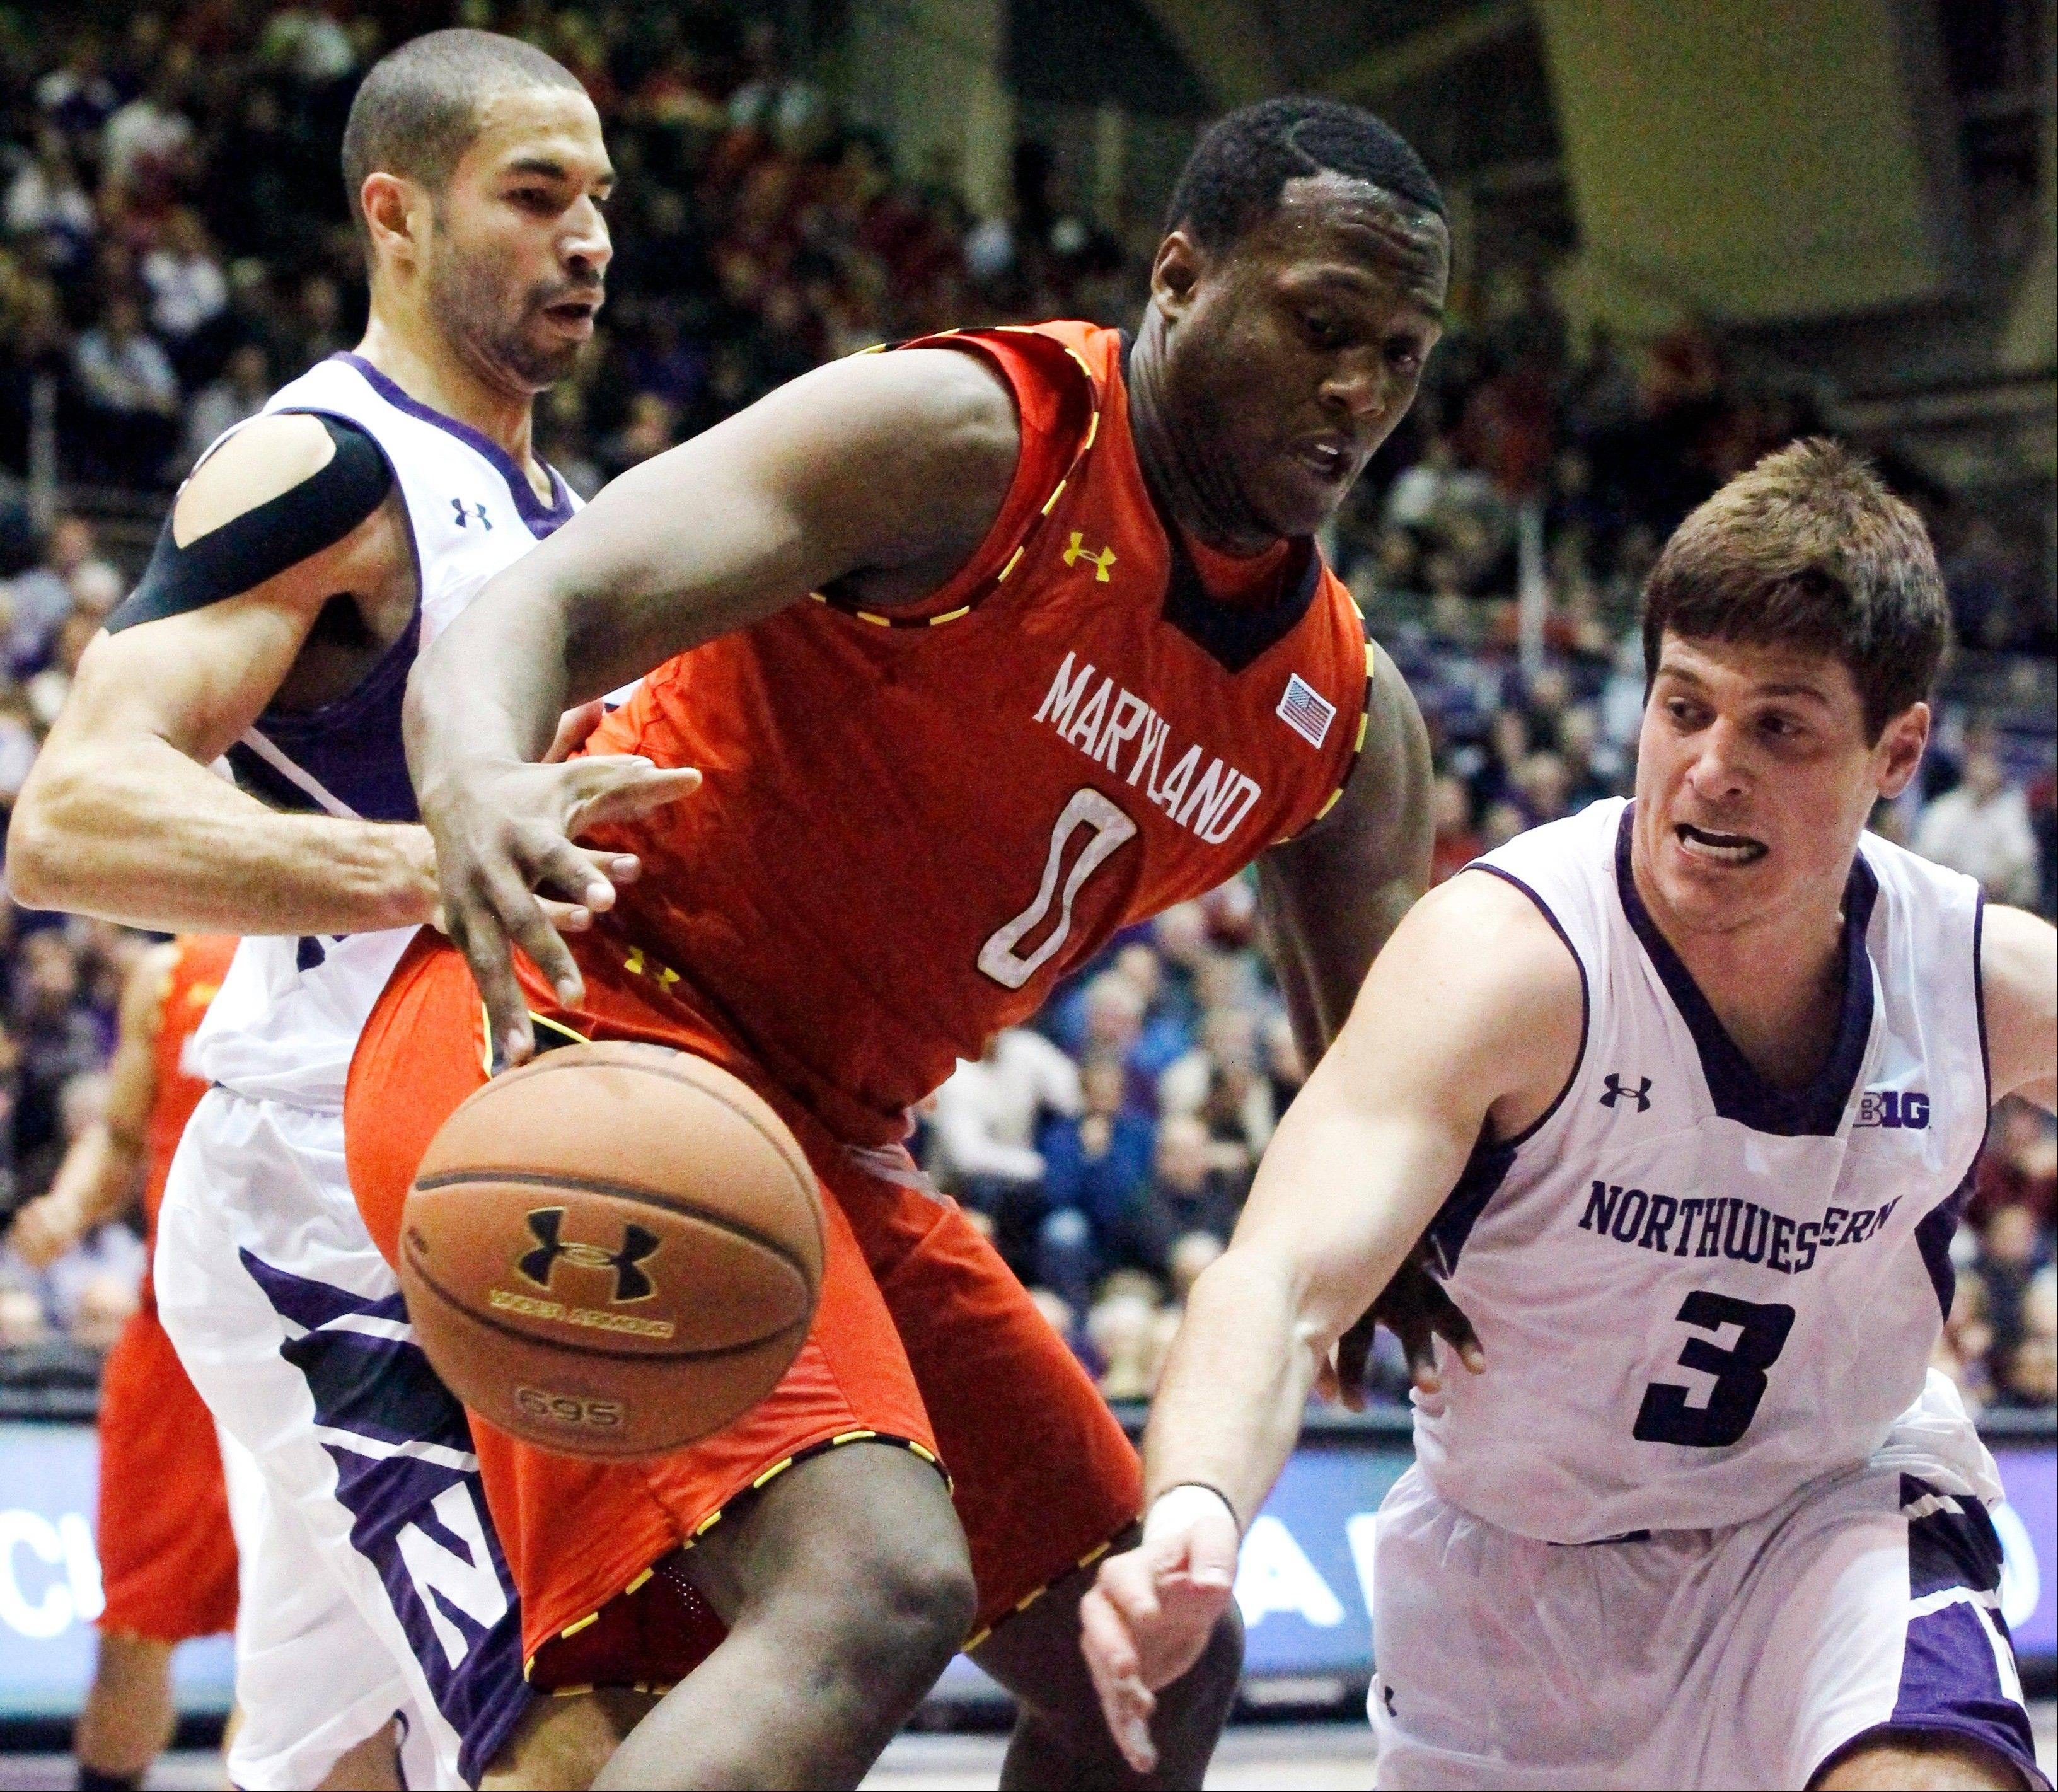 Northwestern guard Dave Sobolewski (3) knocks the ball out of the hands of Maryland forward Charles Mitchell (0) as Northwestern forward Drew Crawford defends Tuesday during the first half in Evanston.